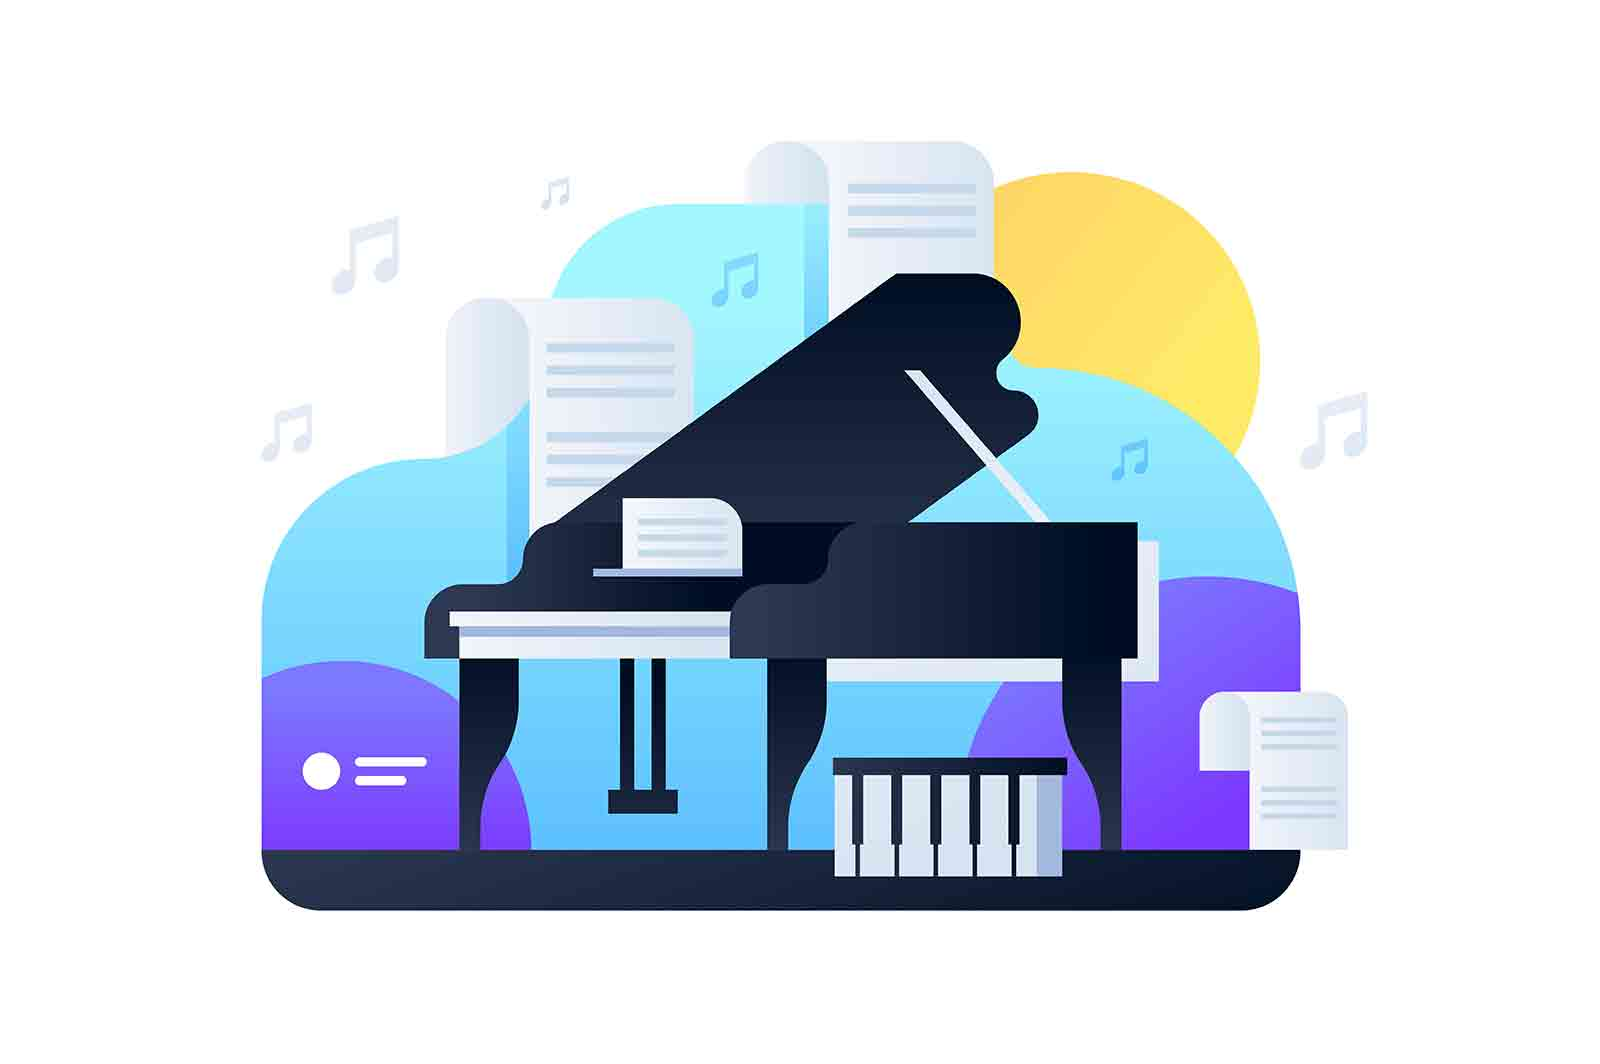 Luxury black piano vector illustration. Musical instrument on stage flat style. Sheet music of famous composition. Concert grand. Hobby concept. Isolated on white background